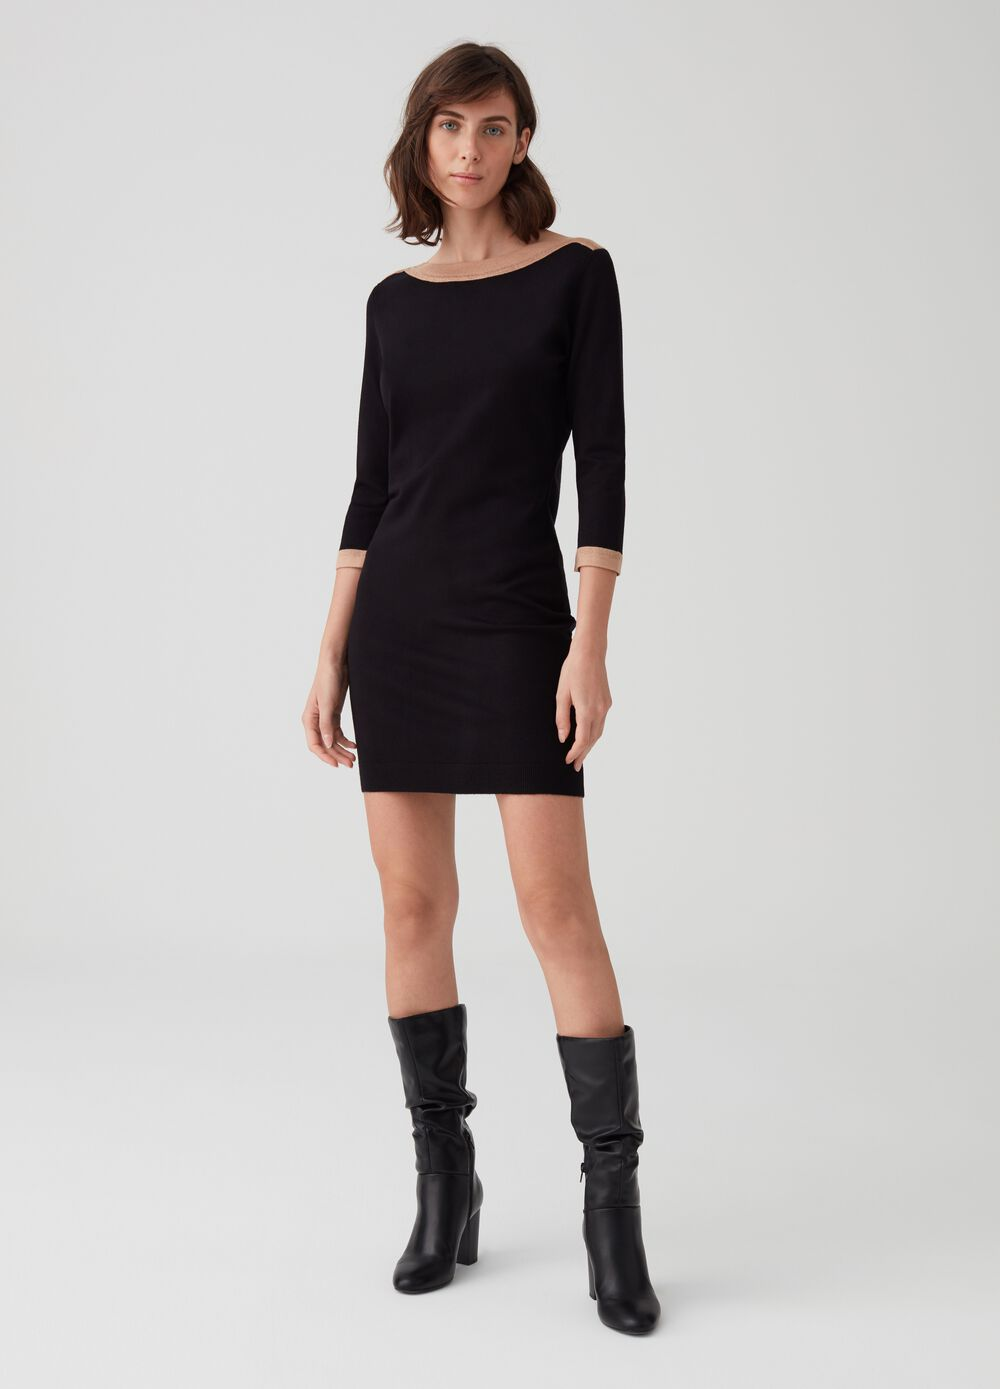 Ribbed dress with three-quarter sleeves